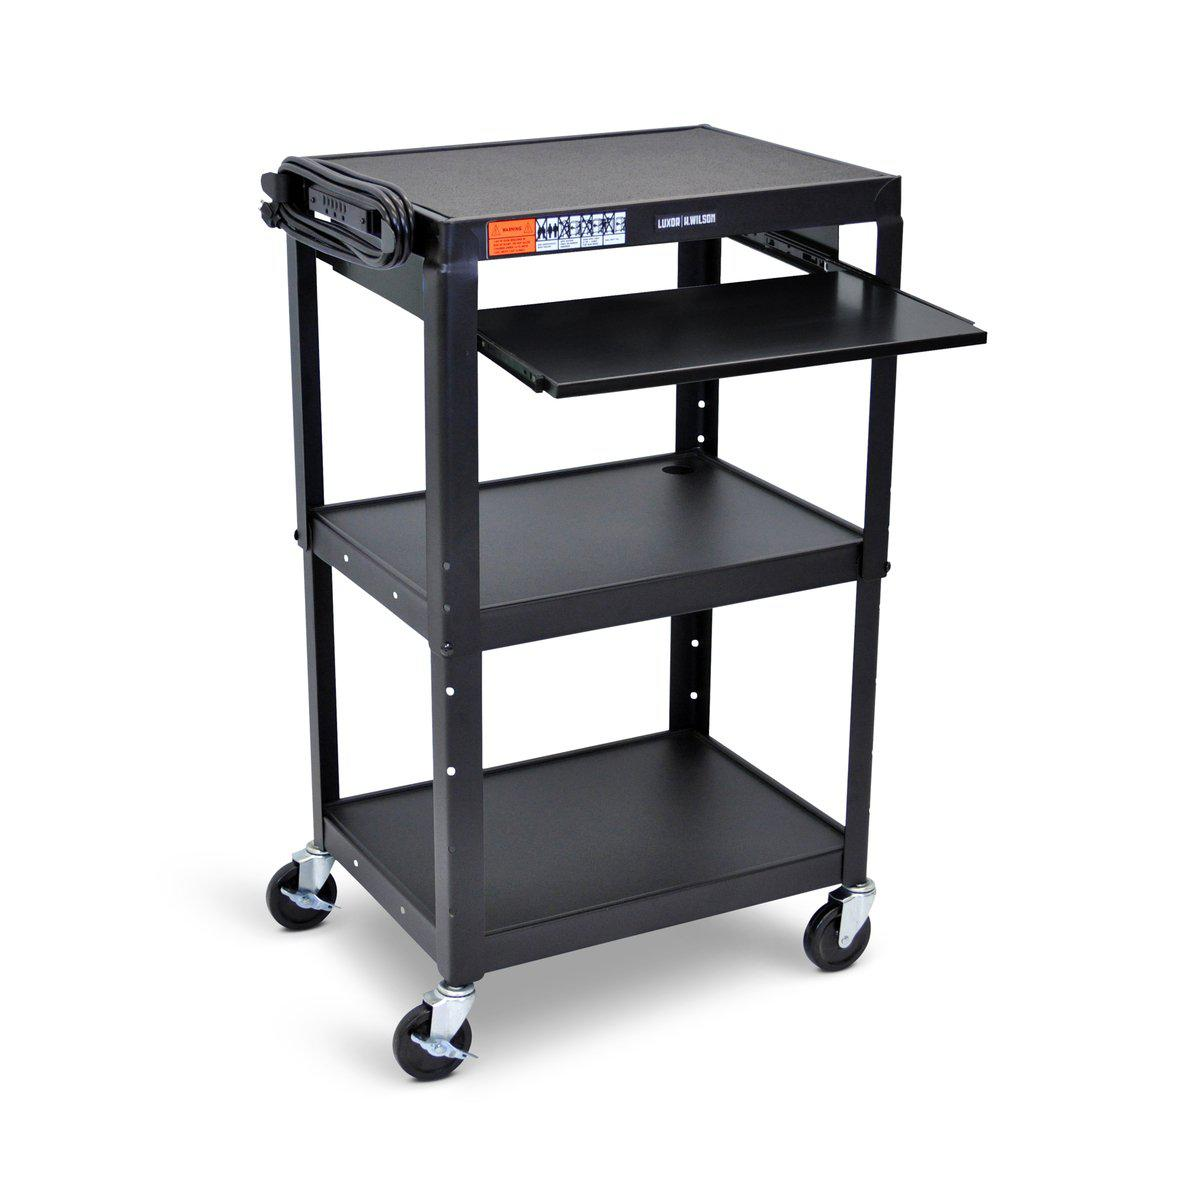 Adjustable-Height Steel AV Cart with Pullout Tray